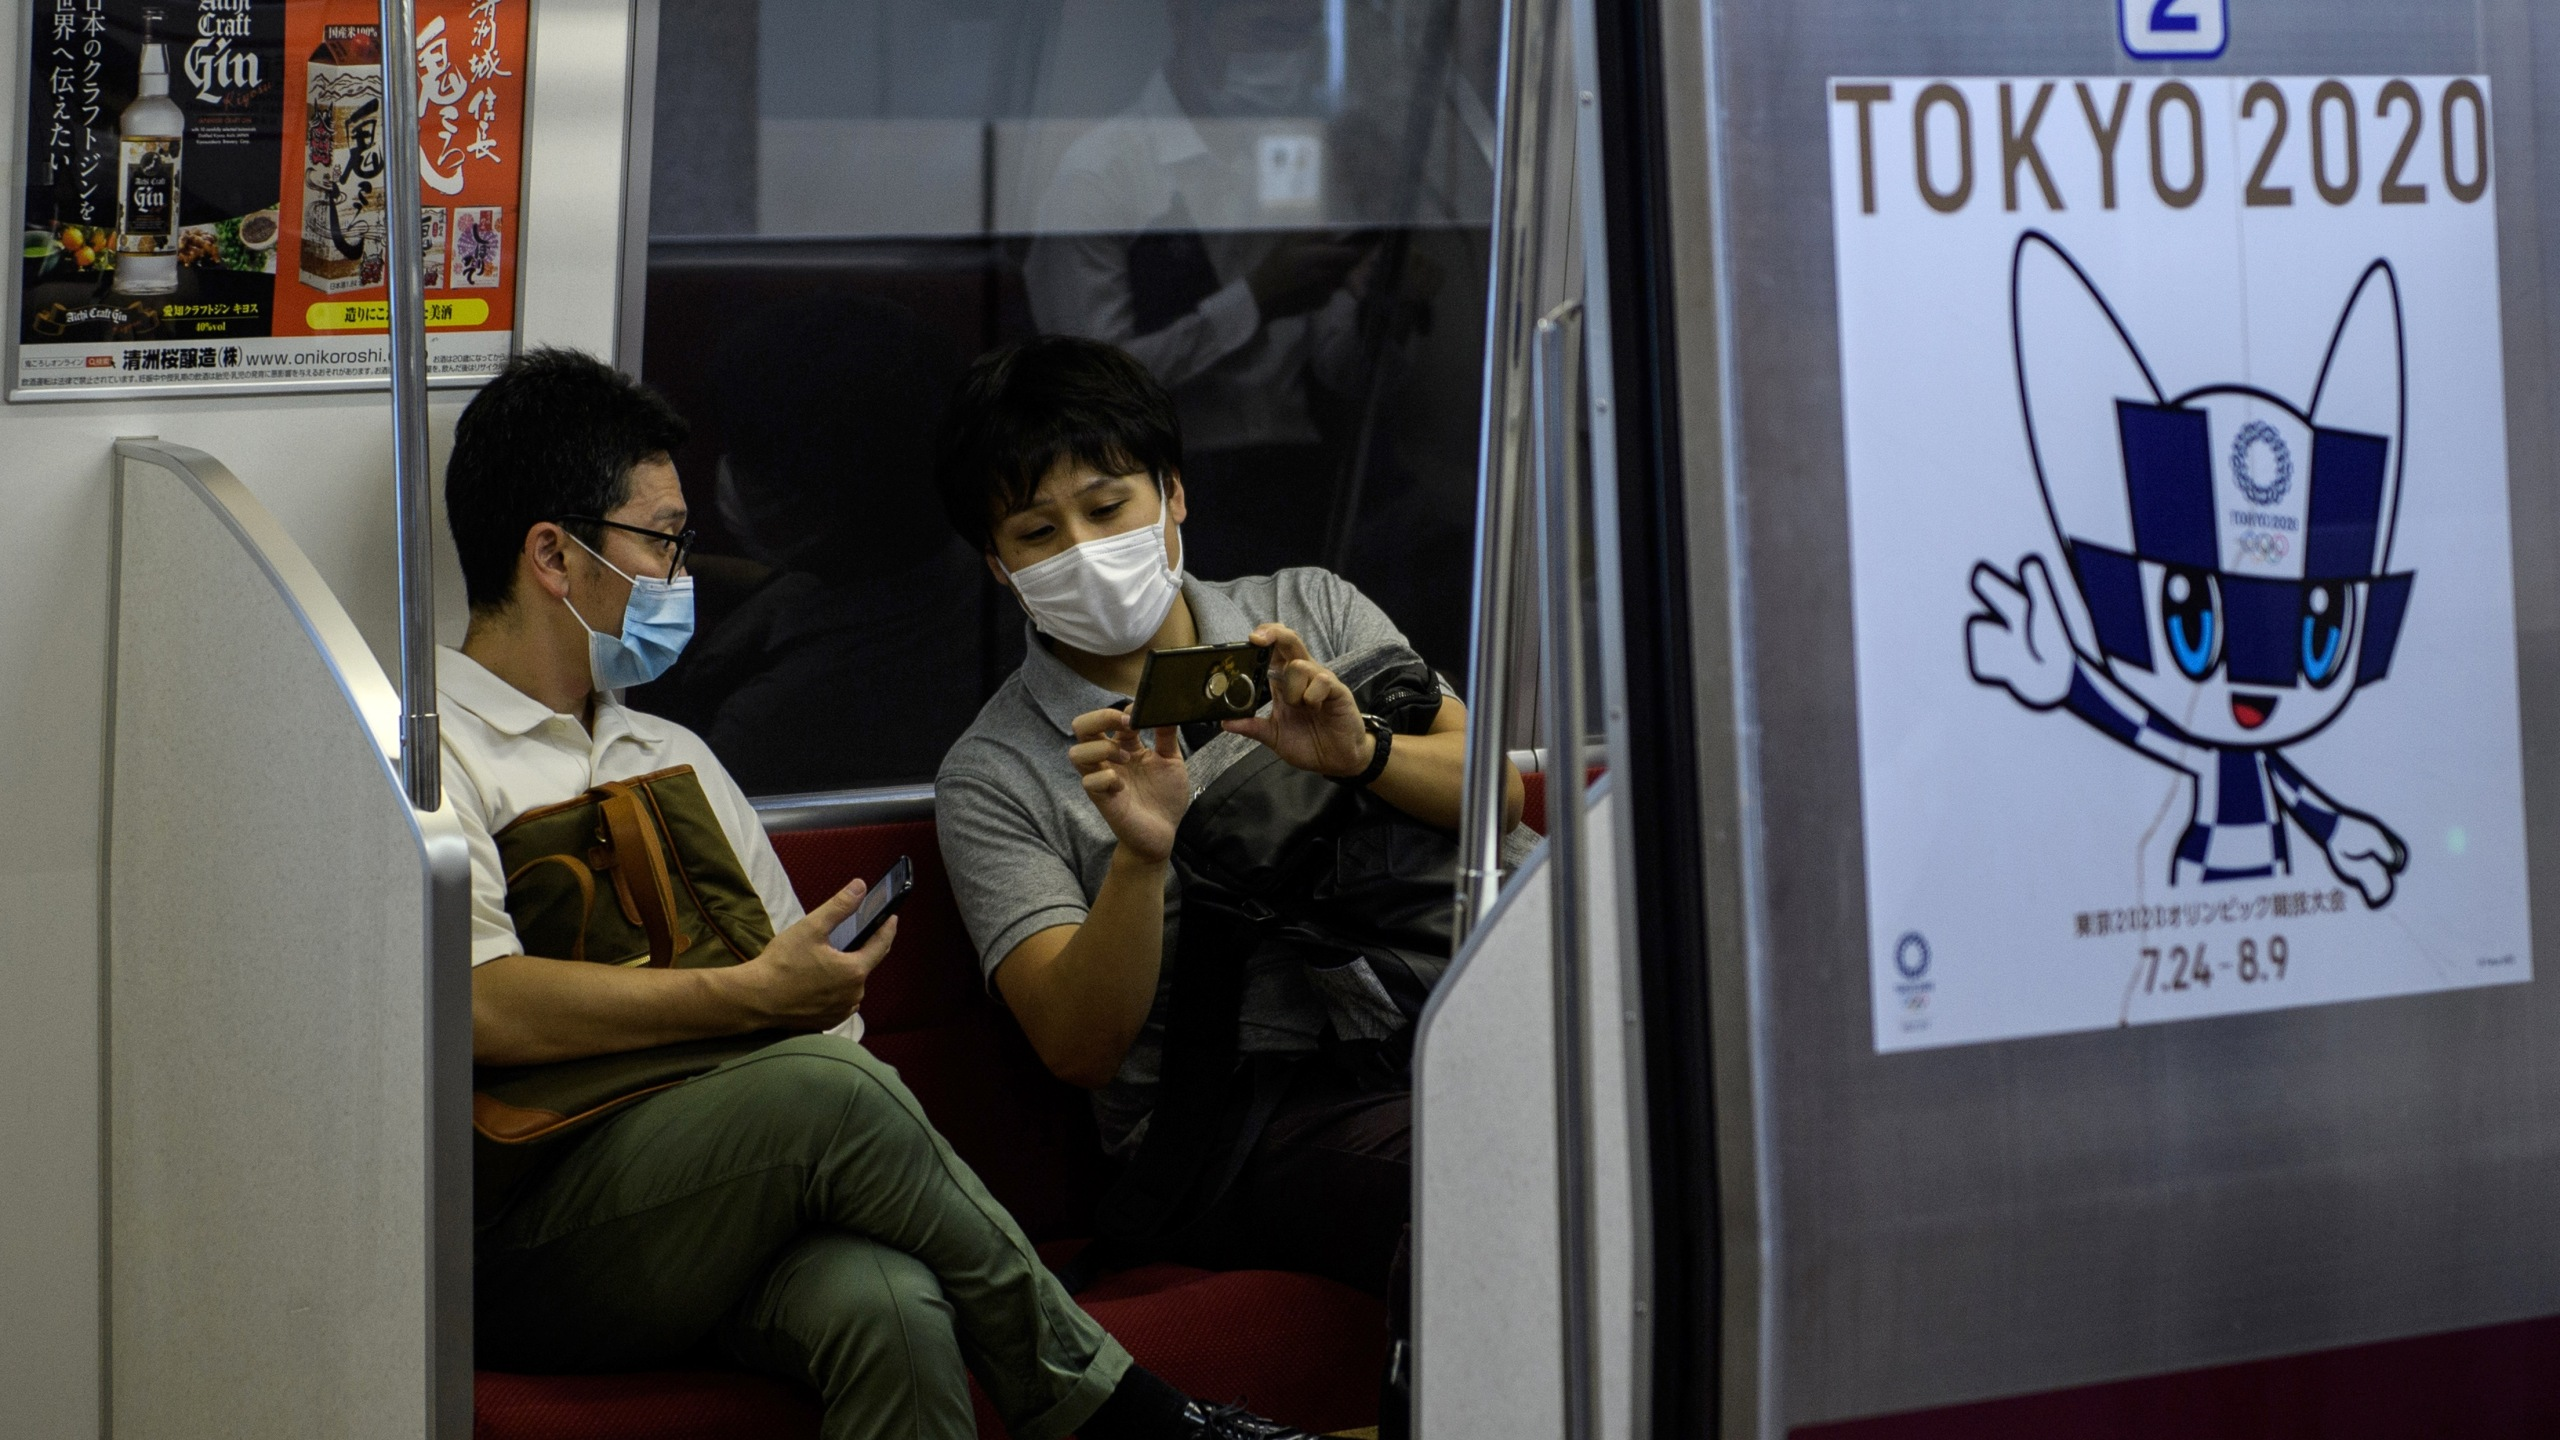 This picture taken on July 13, 2020 shows passengers talking inside a train near an advertisement (R) for the Tokyo 2020 Olympic Games in Tokyo. (Photo by Philip FONG / AFP)